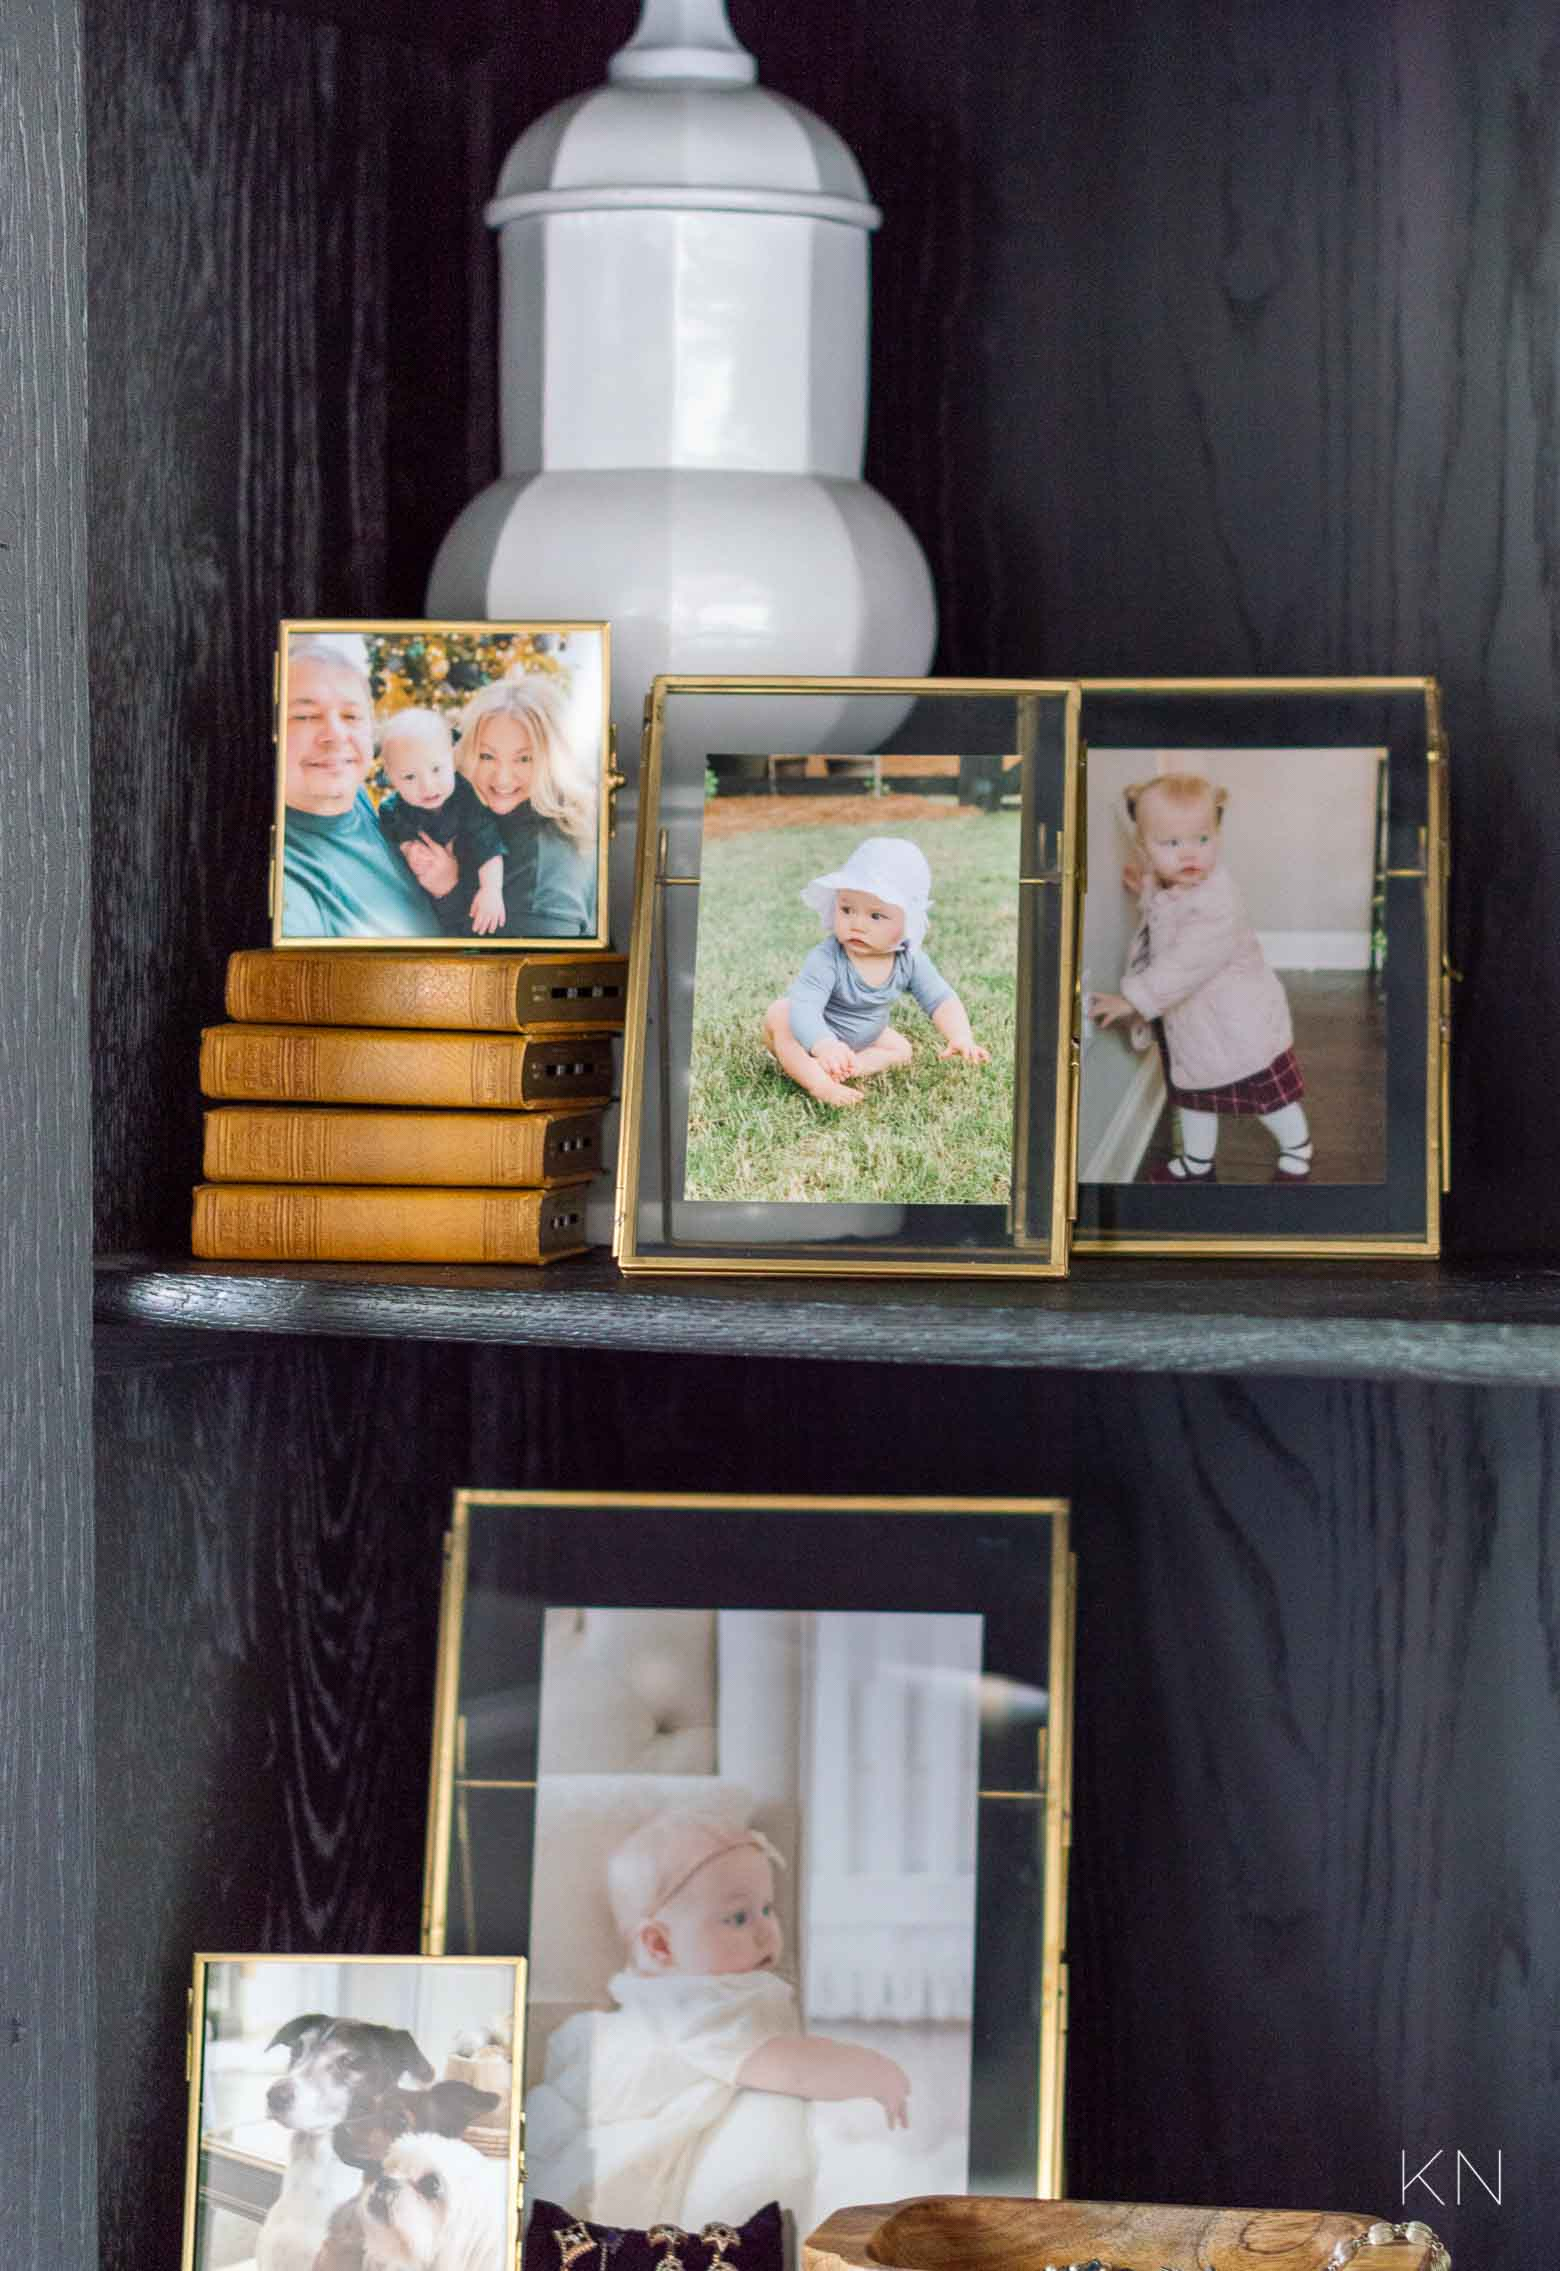 How to Use Old Special Family Mementos and Mix with New Home Decor